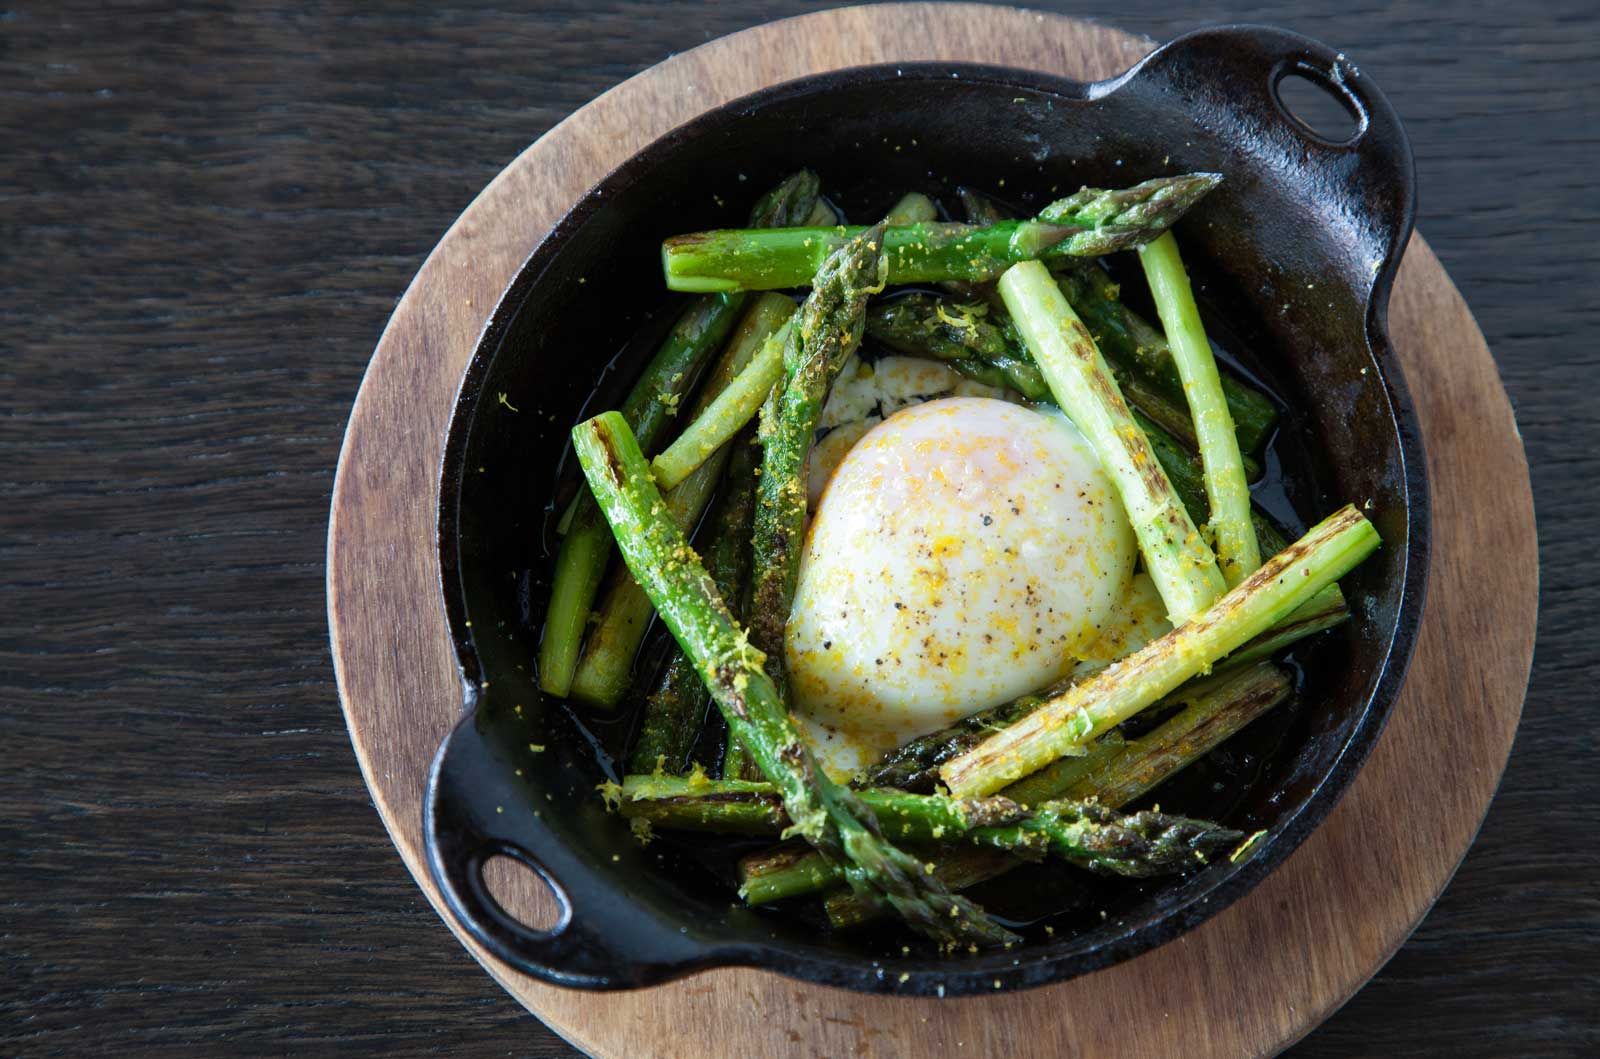 Egg and asparagus at The 404 Kitchen in Nashville